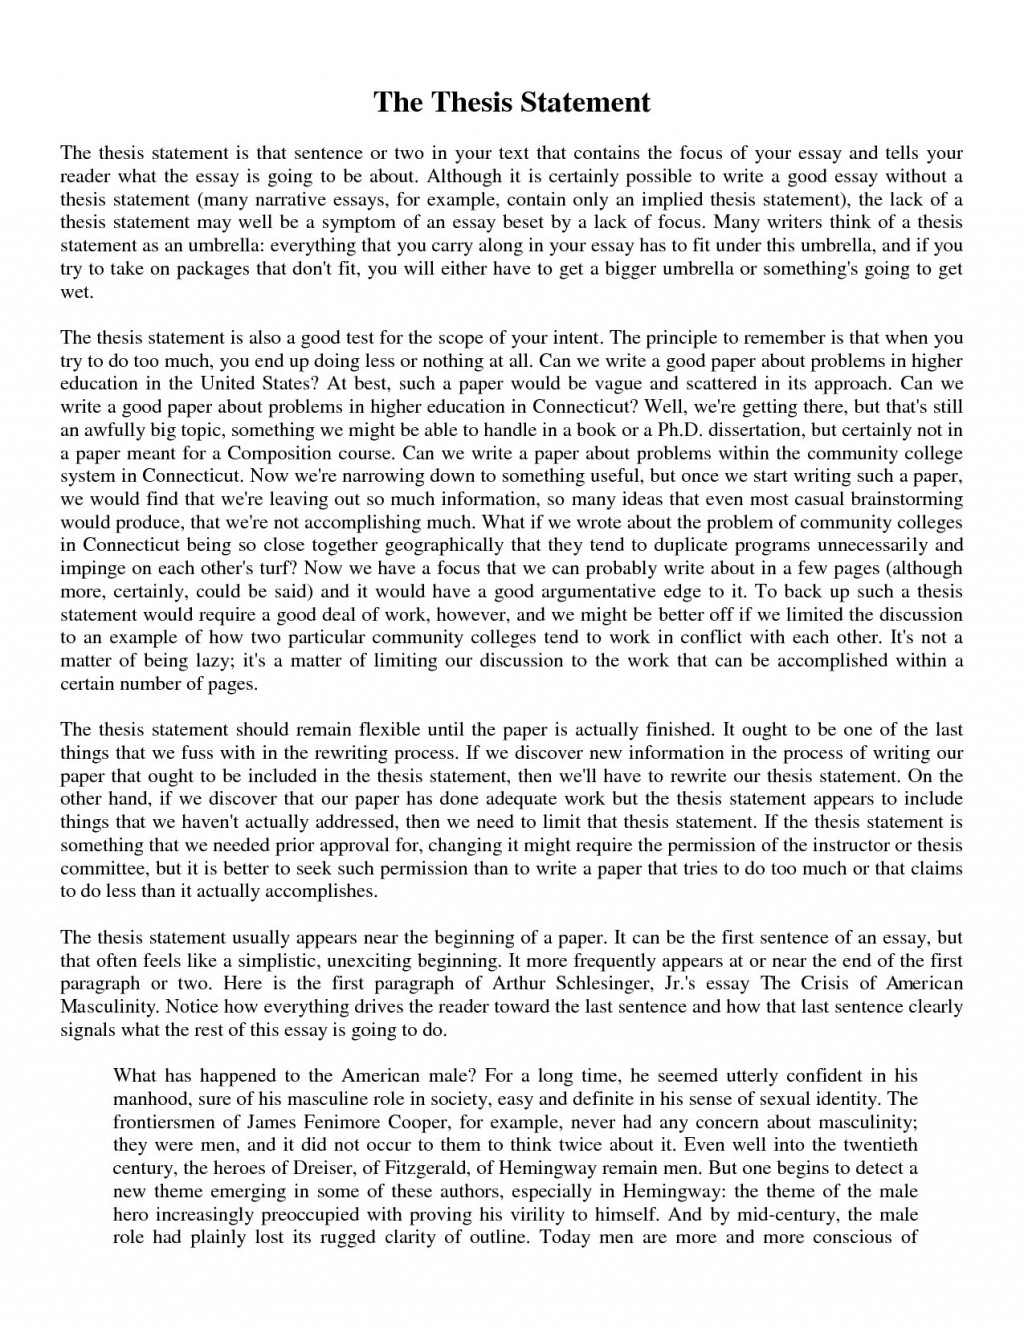 008 What Is Thesis Statement In An Essay Lt1odxucuo Fascinating A The Purpose Of Argumentative Informative Large